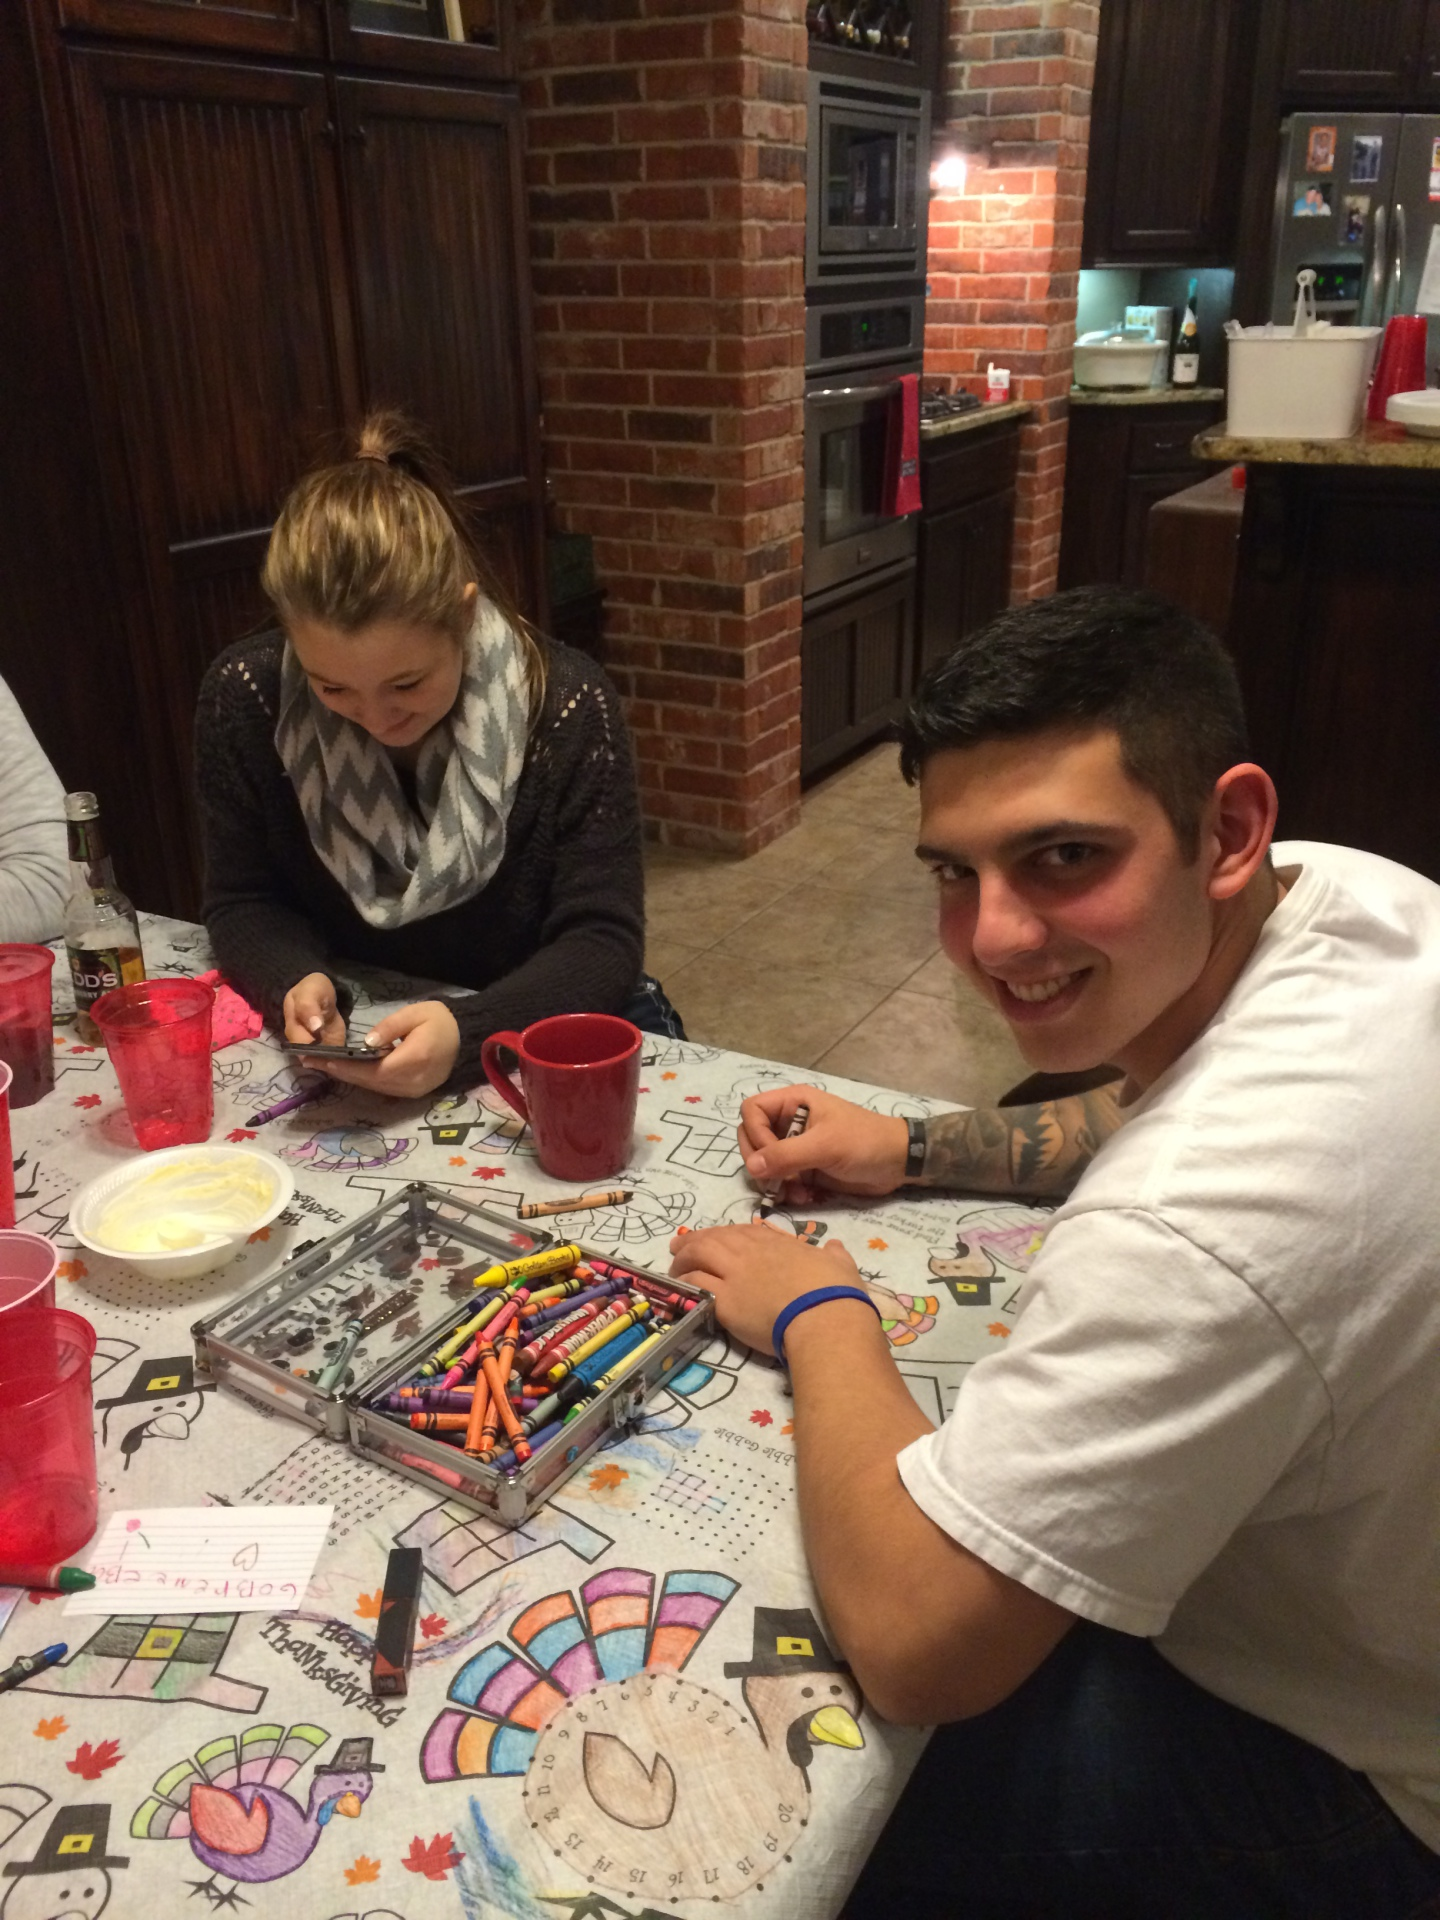 Airmen coloring at children's table on Thanksgiving